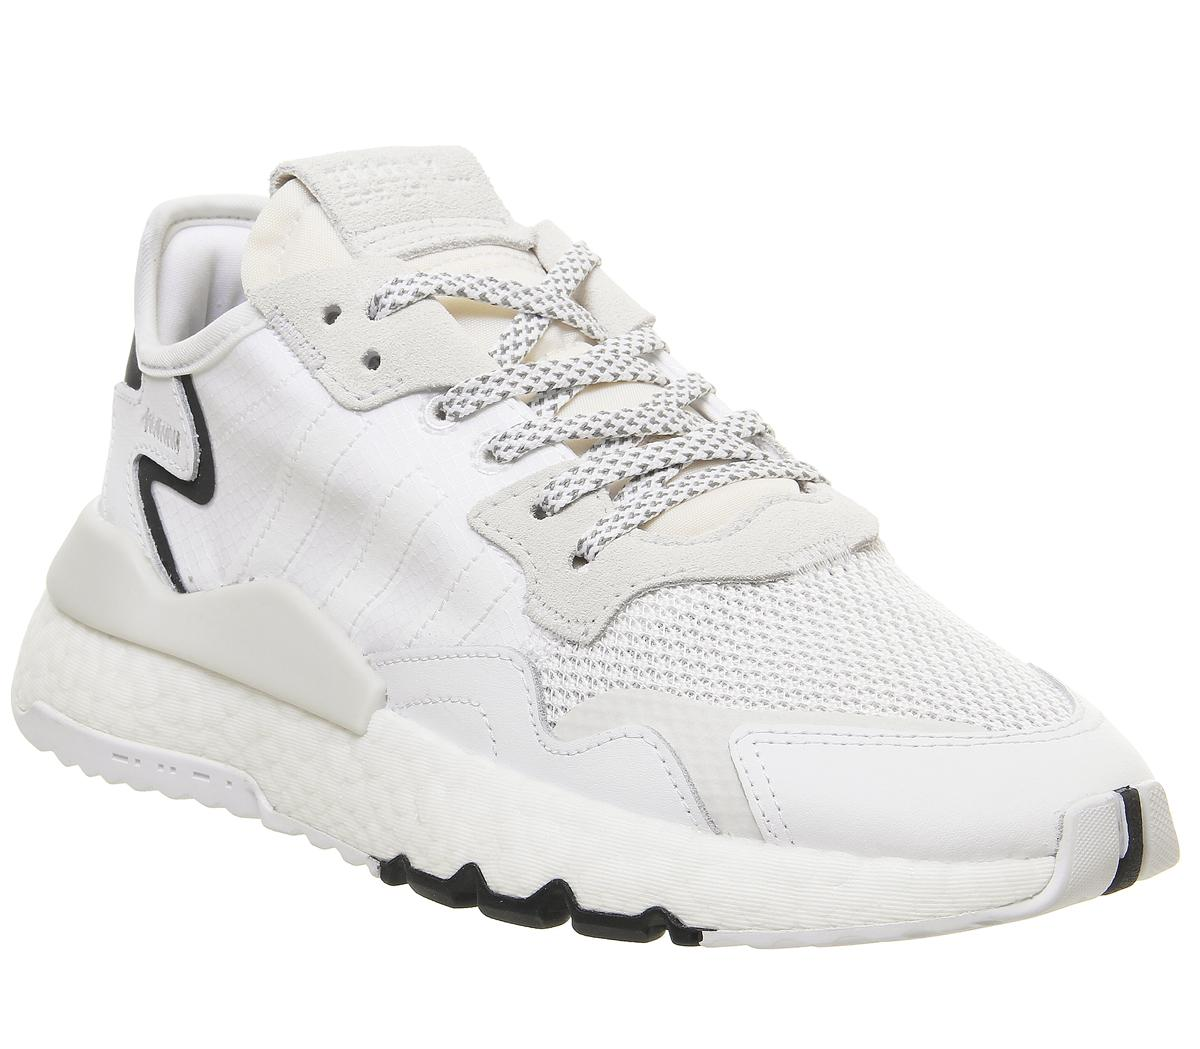 adidas Nite Jogger Boost Trainers Ftwr